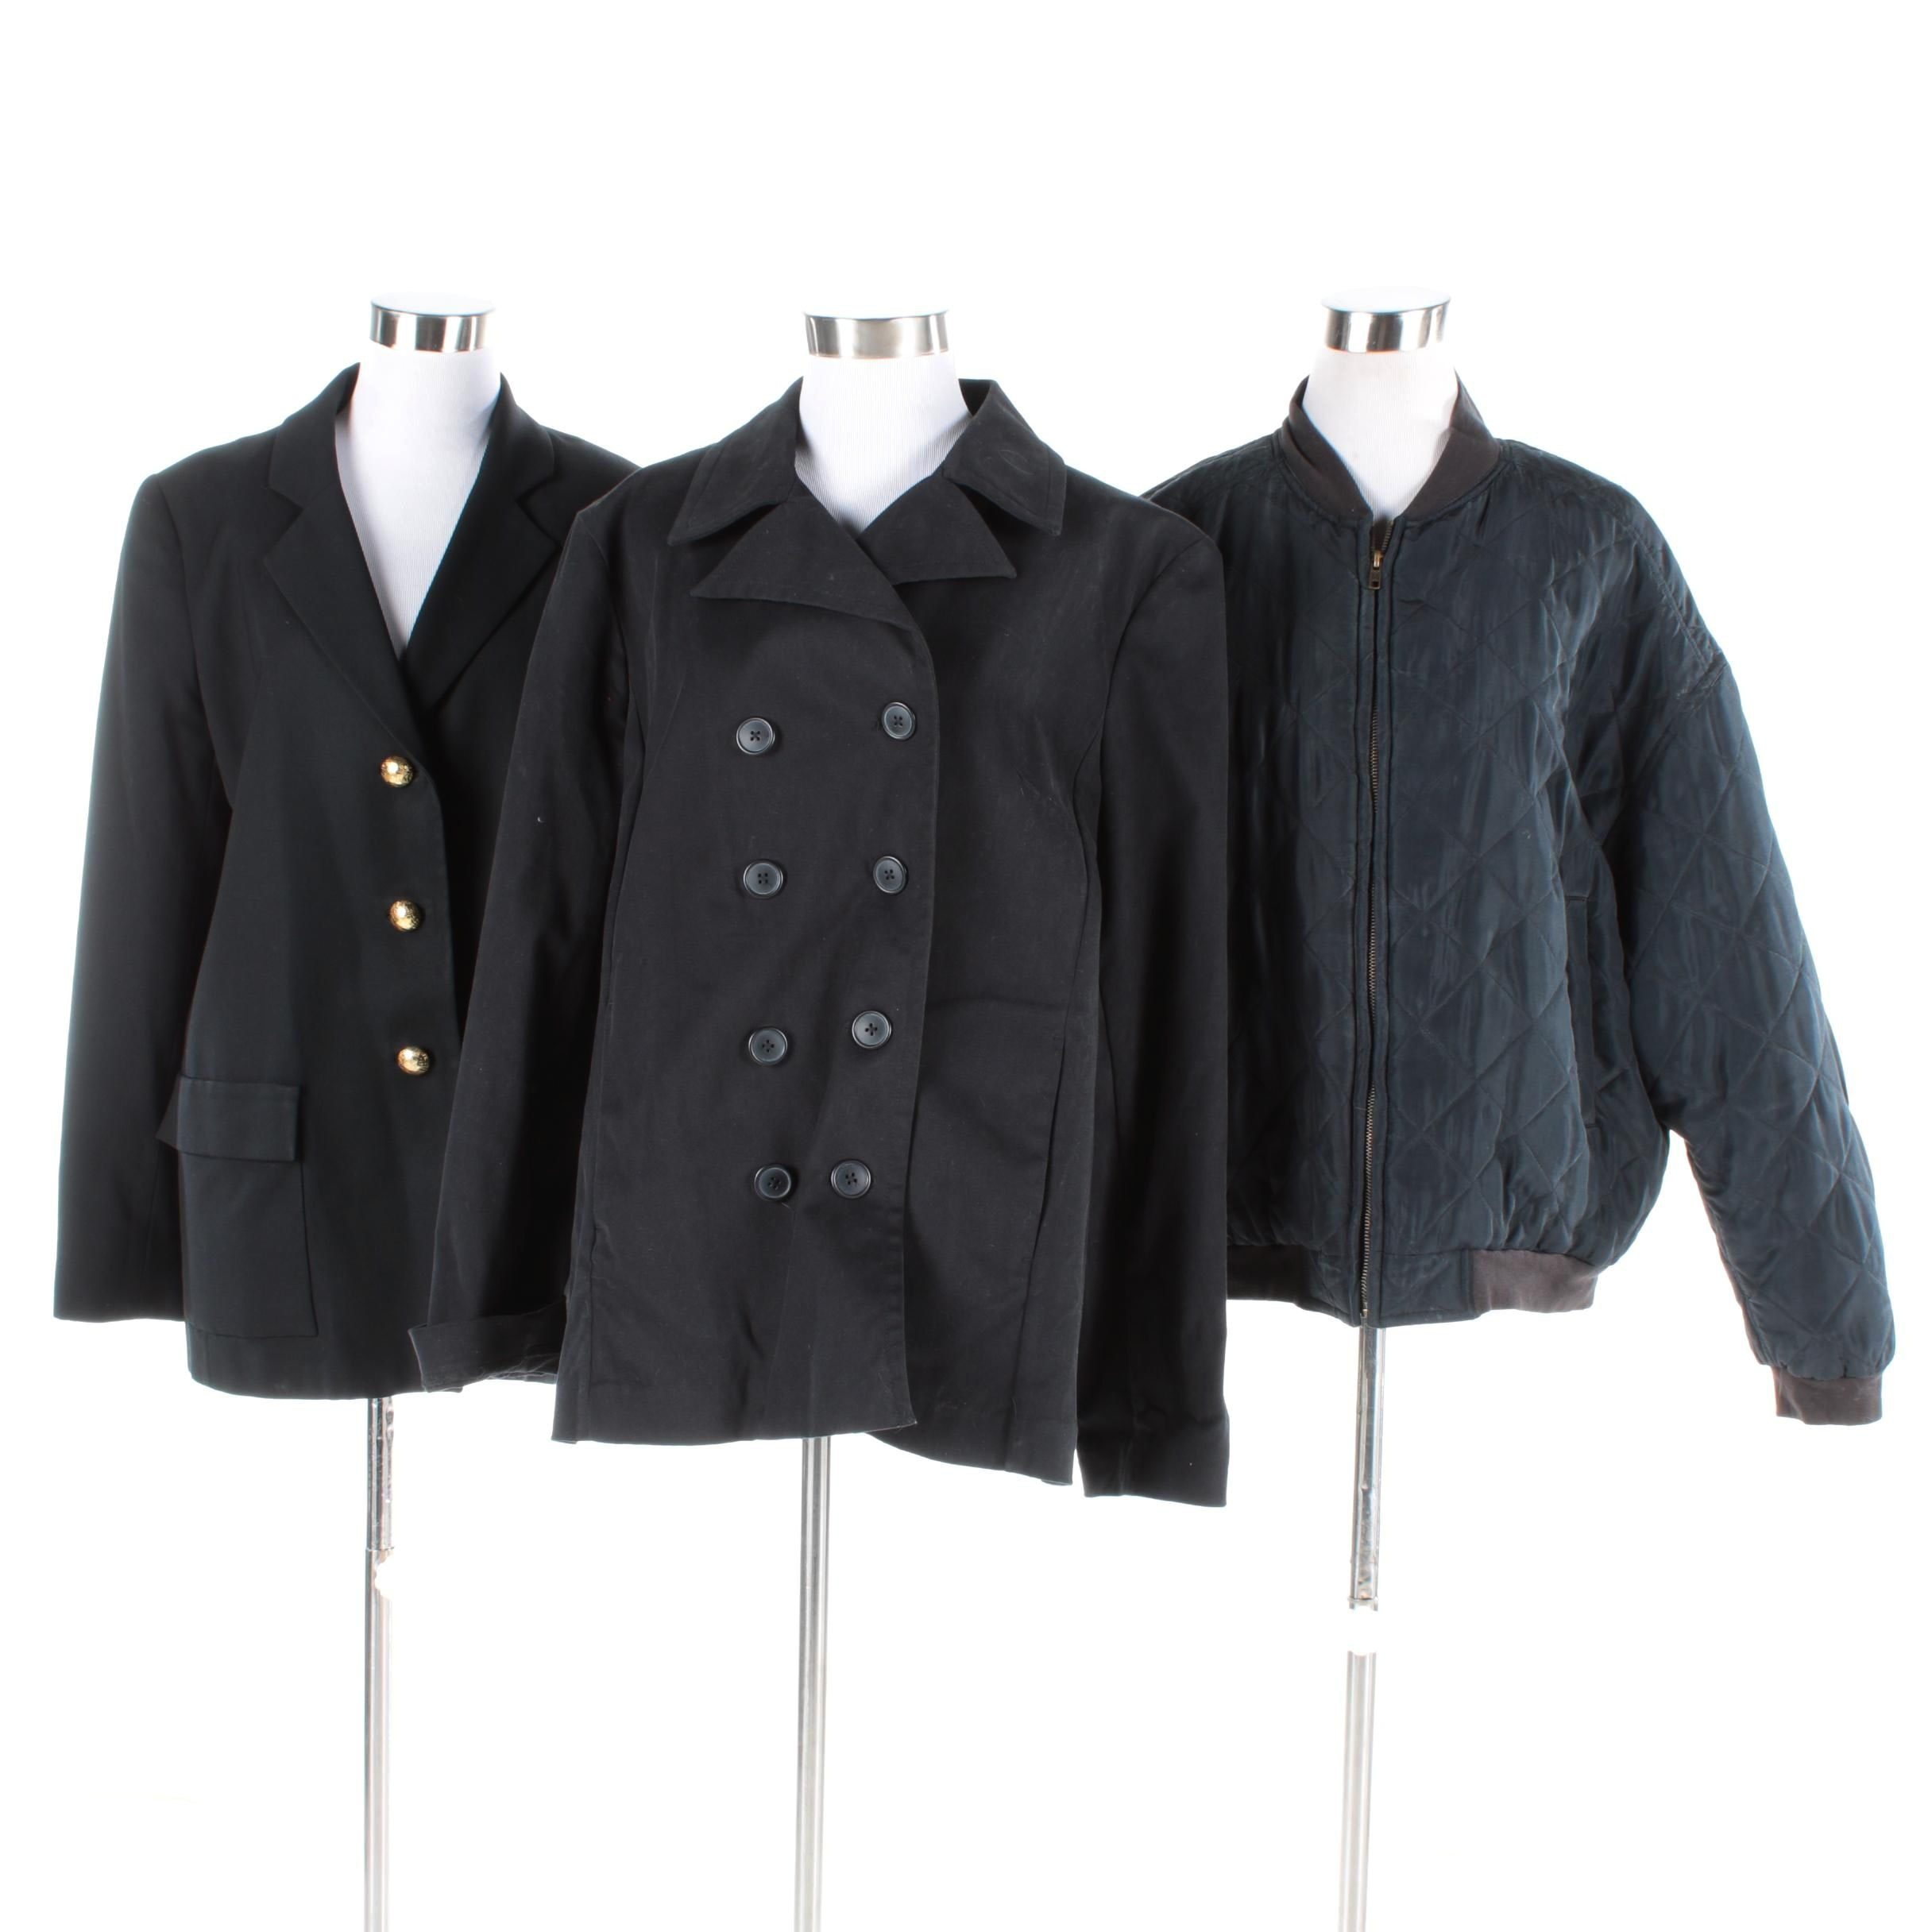 Women's Black Jackets Including Gap and David Hayes